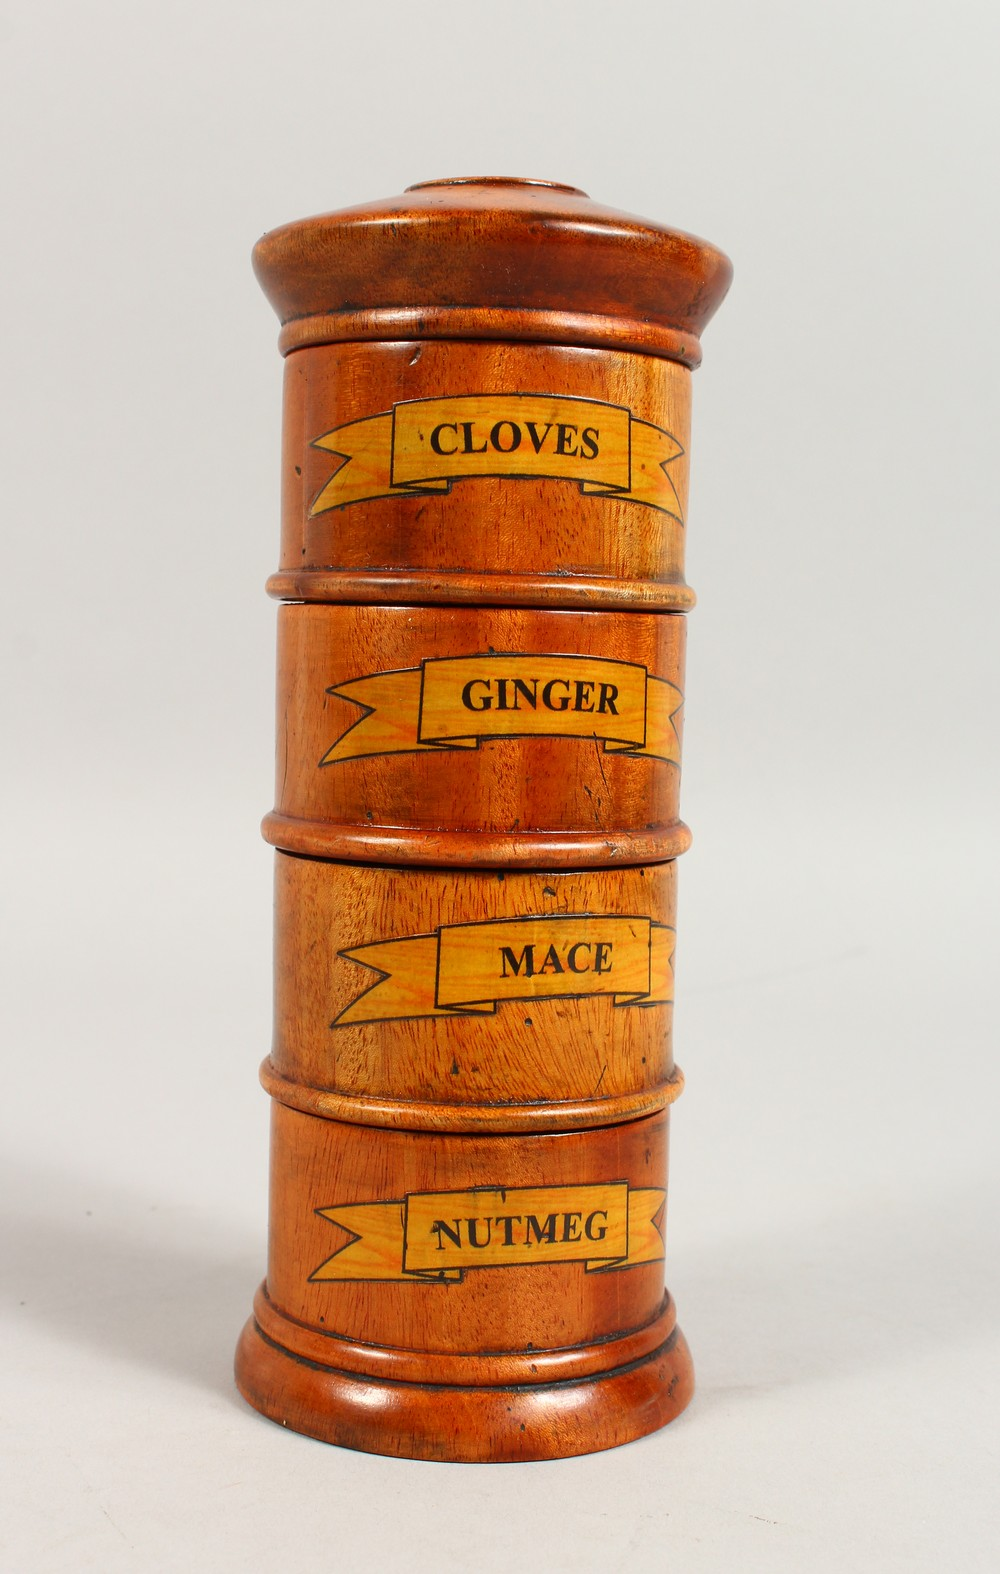 Lot 1558 - A FOUR TIER SPICE TOWER. 7.5ins high.